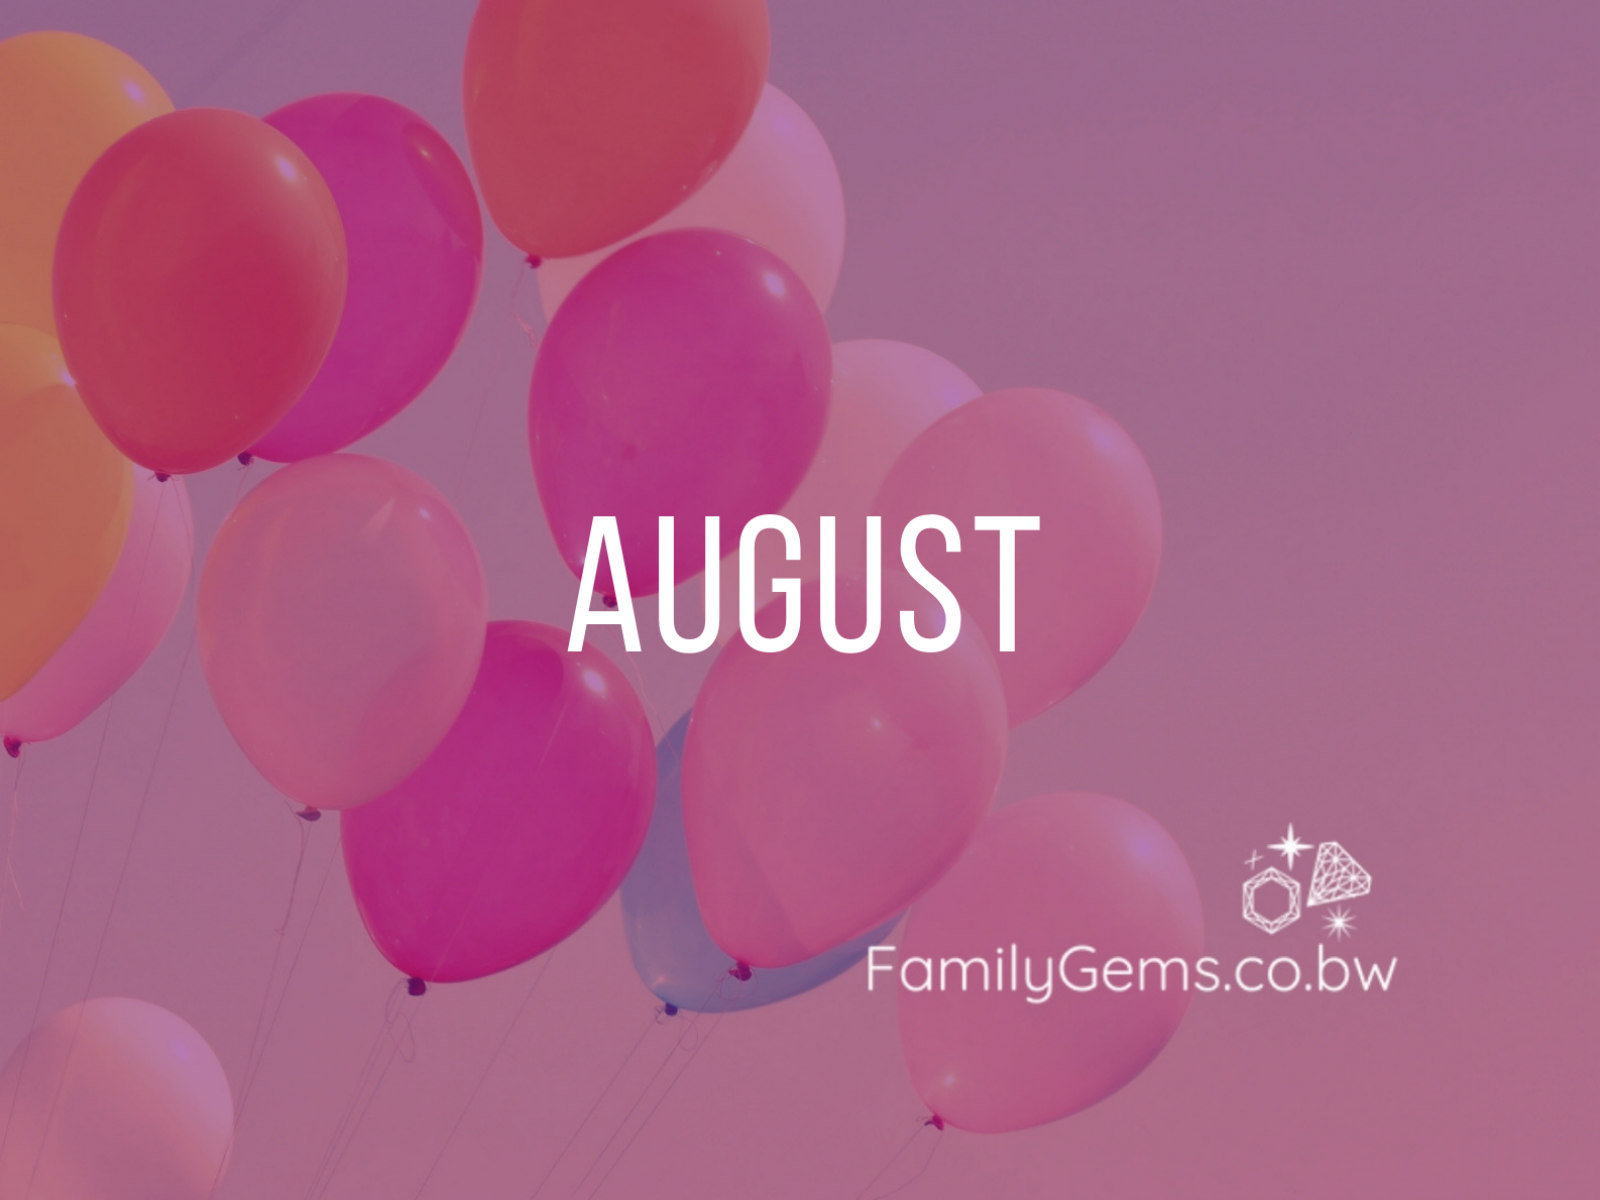 Events in August 2019